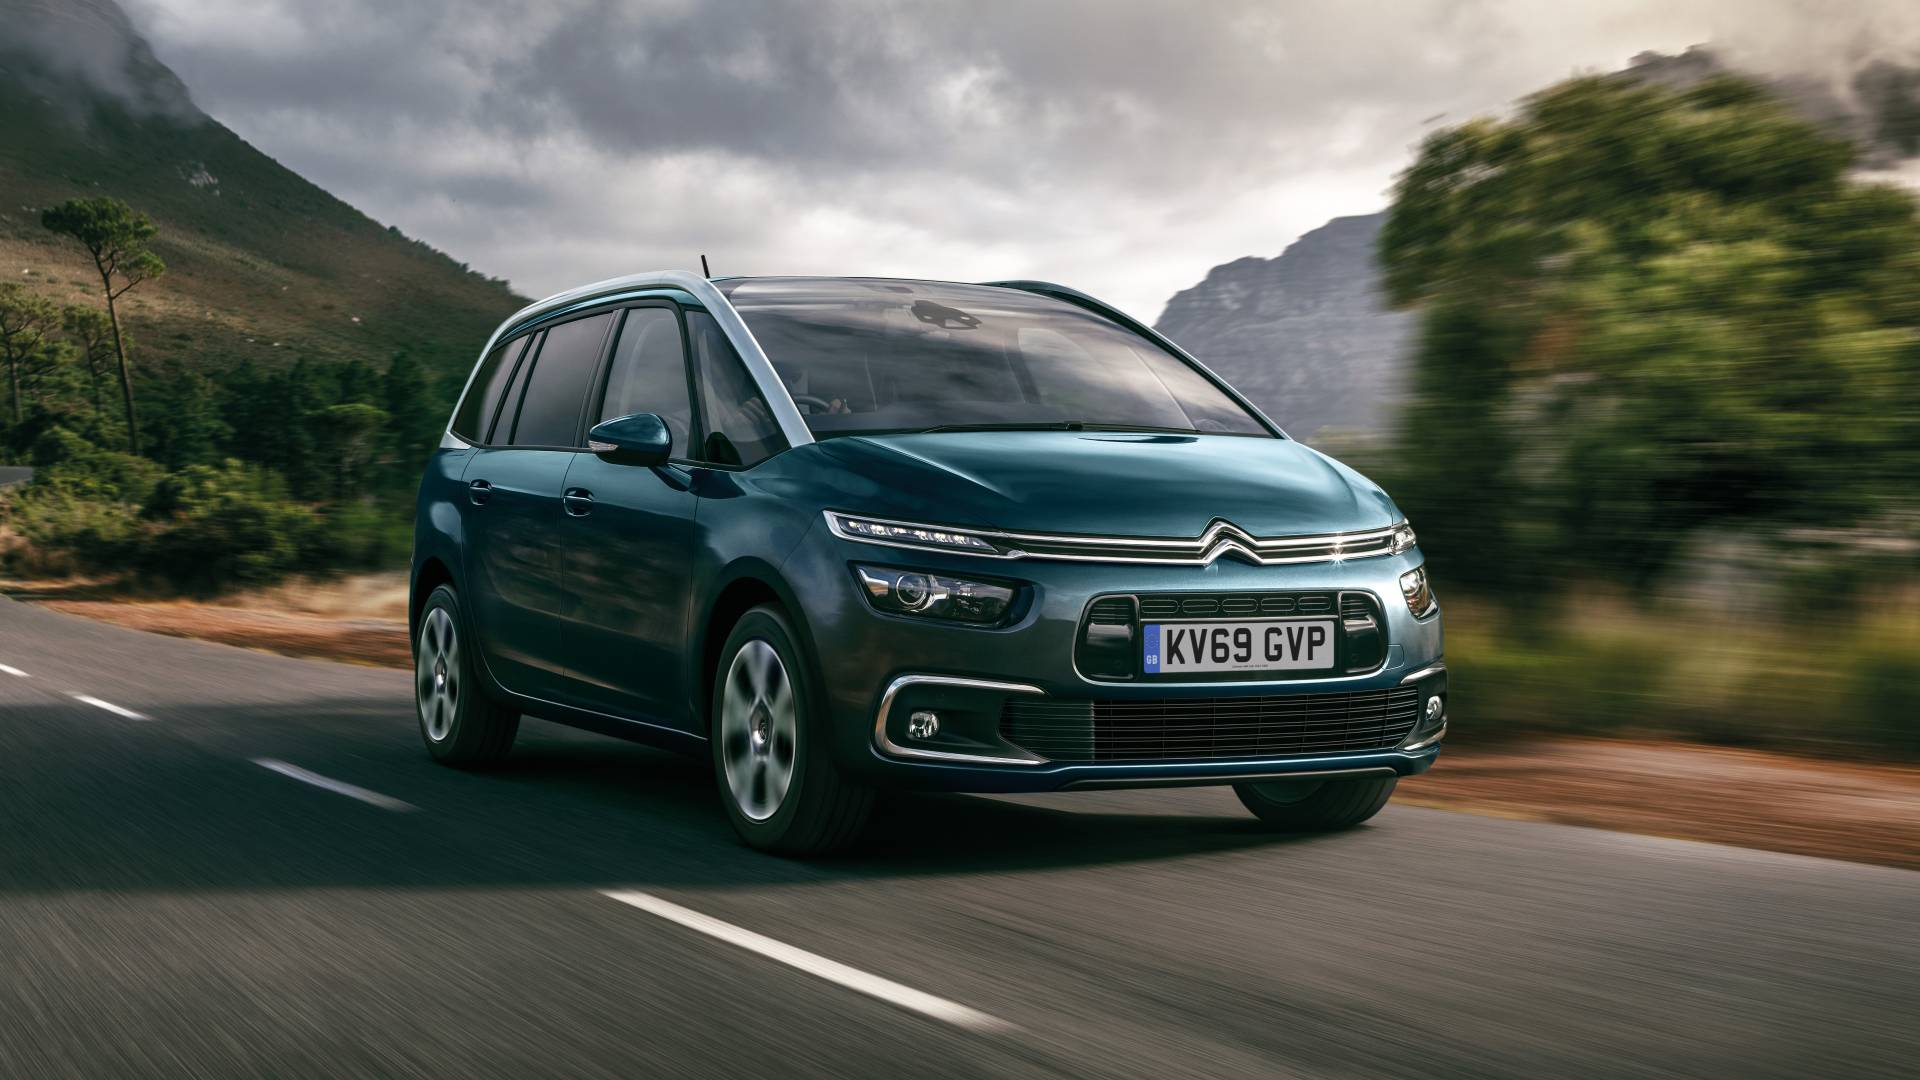 Citroen-grand-c4-spacetourer-design.jpg